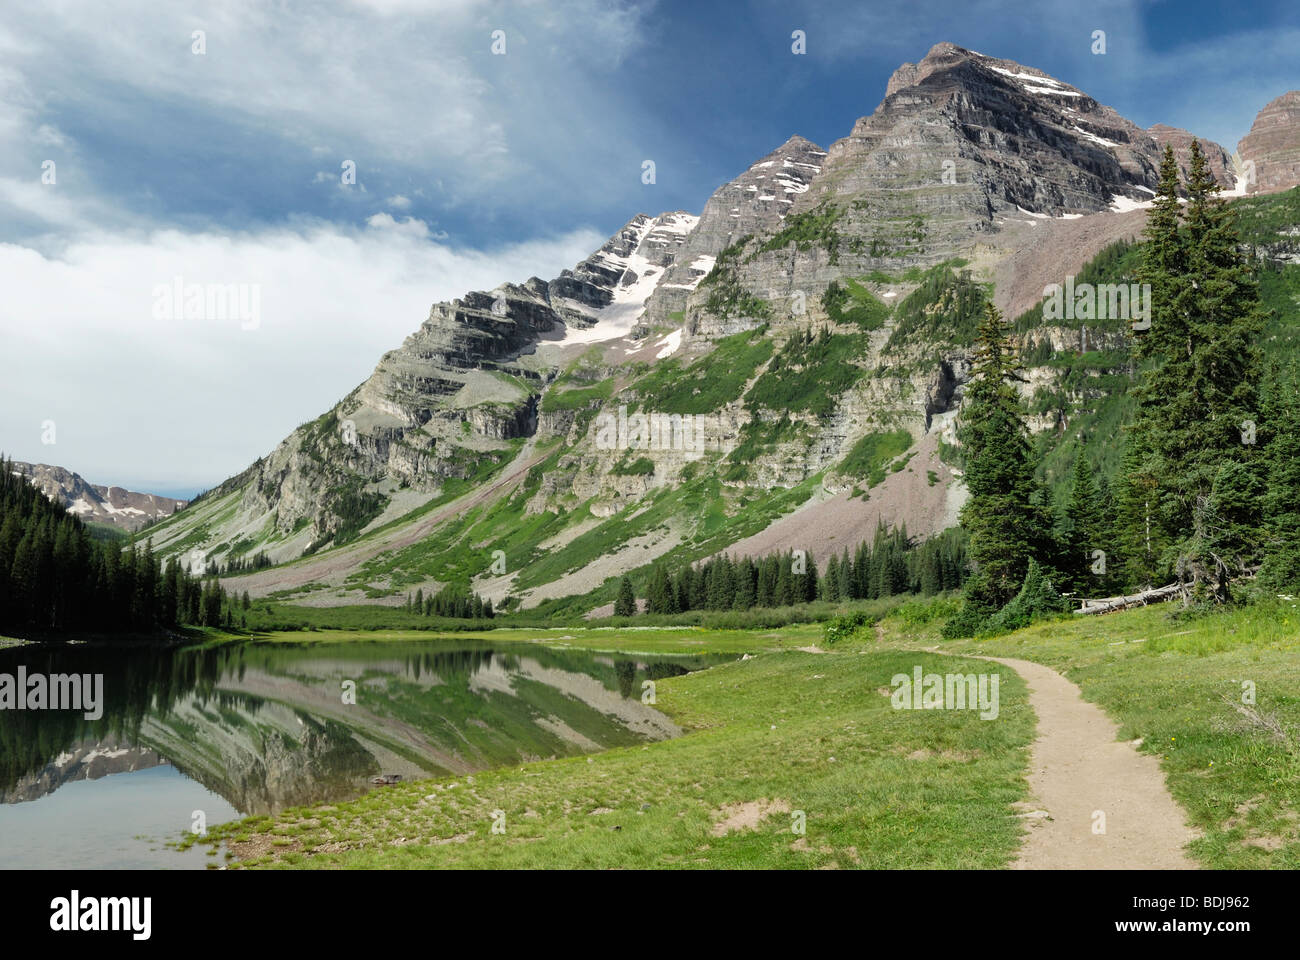 Hiking trail in Maroon Bells Wilderness, central Colorado - Stock Image